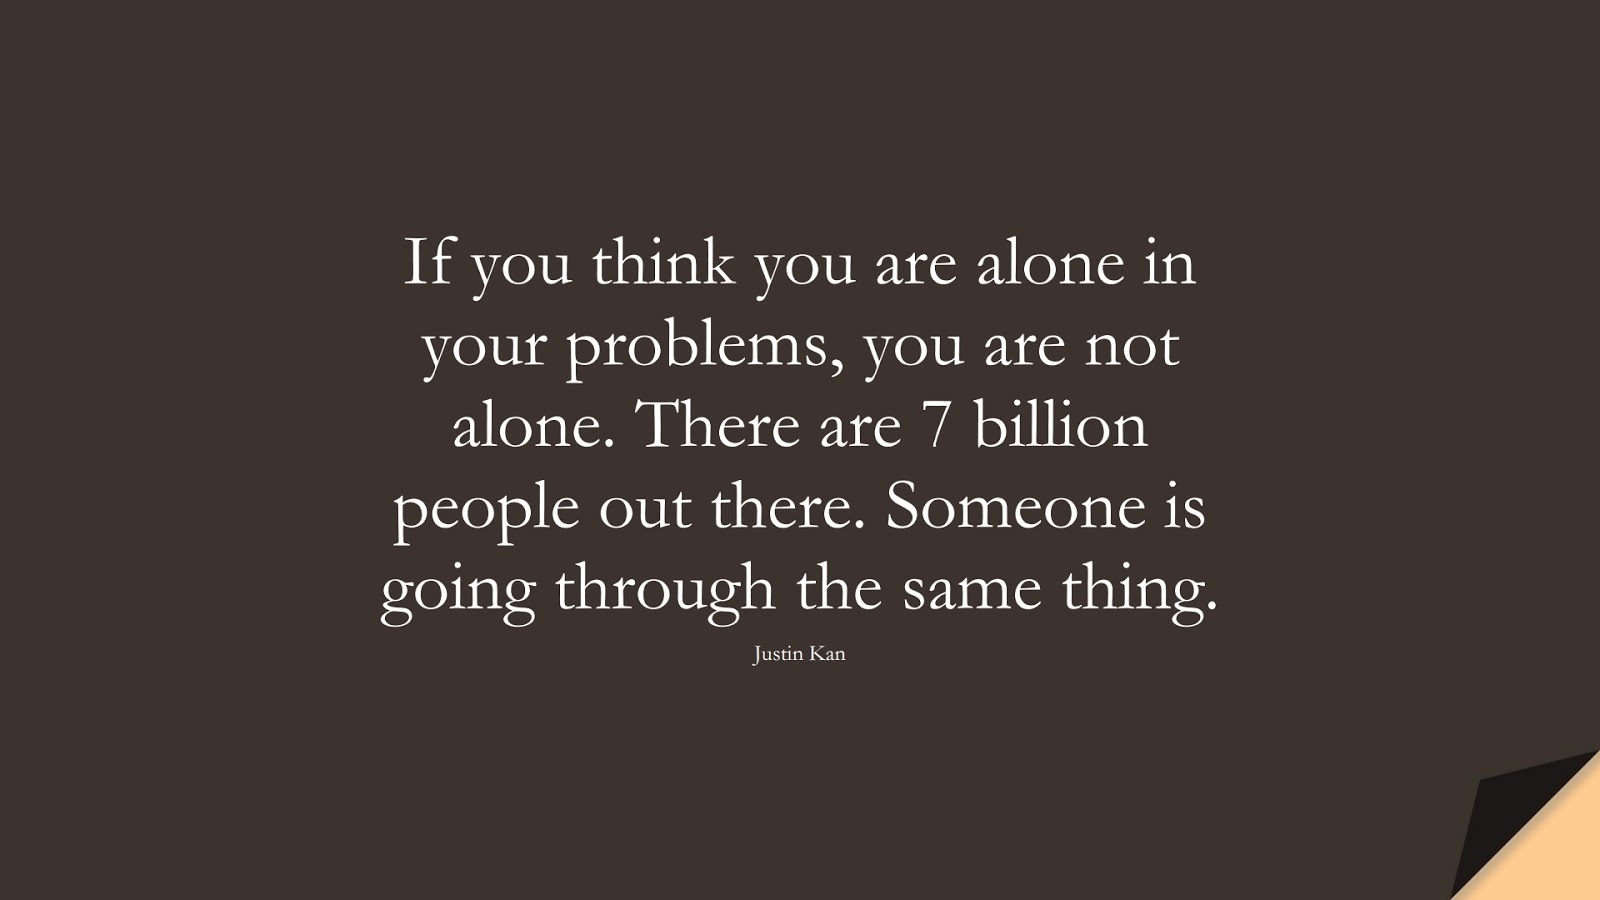 If you think you are alone in your problems, you are not alone. There are 7 billion people out there. Someone is going through the same thing. (Justin Kan);  #DepressionQuotes